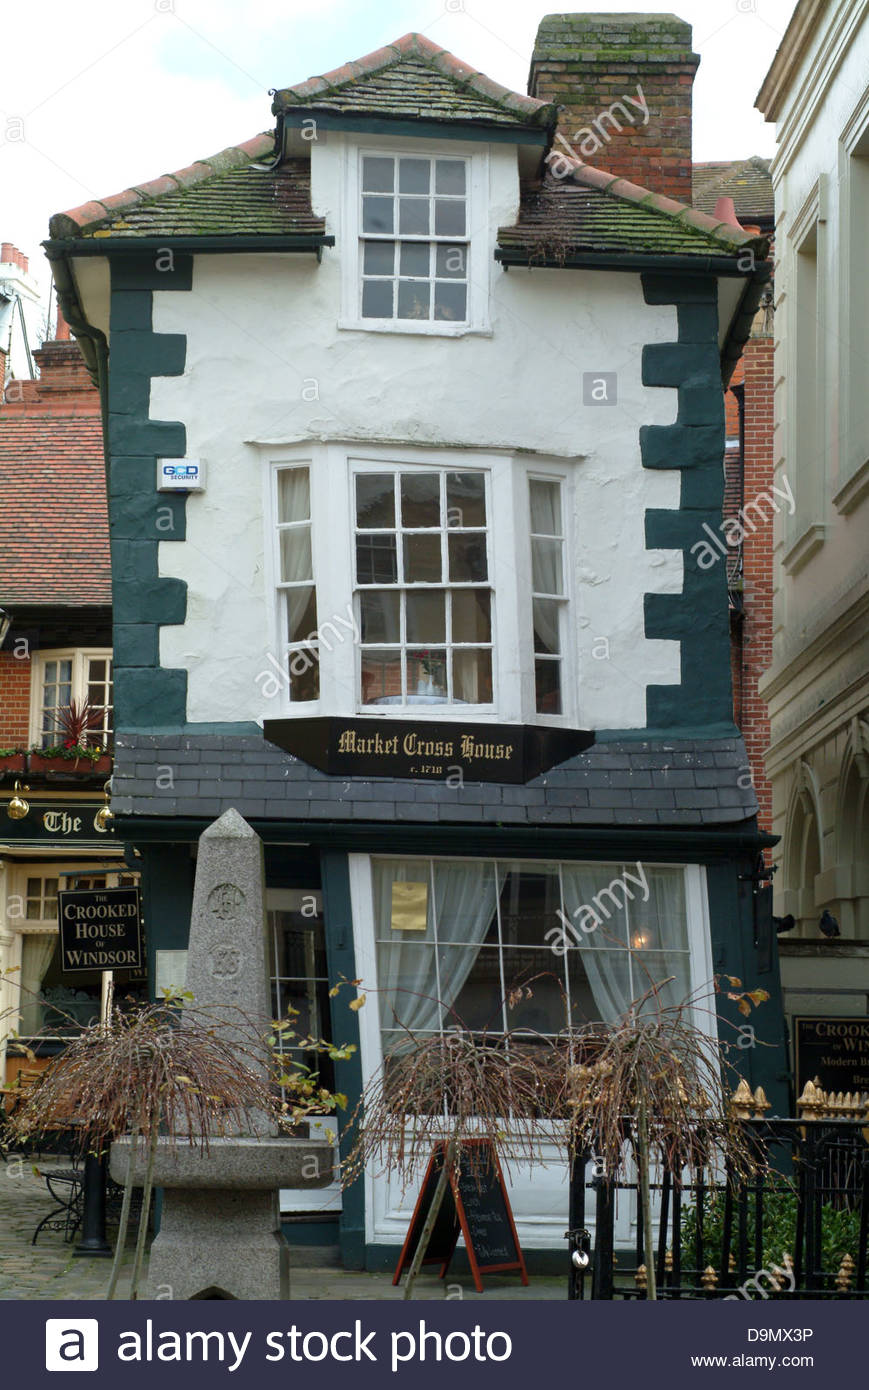 architecture building buildings england english exterior facade half timber inn near old outside pub public house - Stock Image